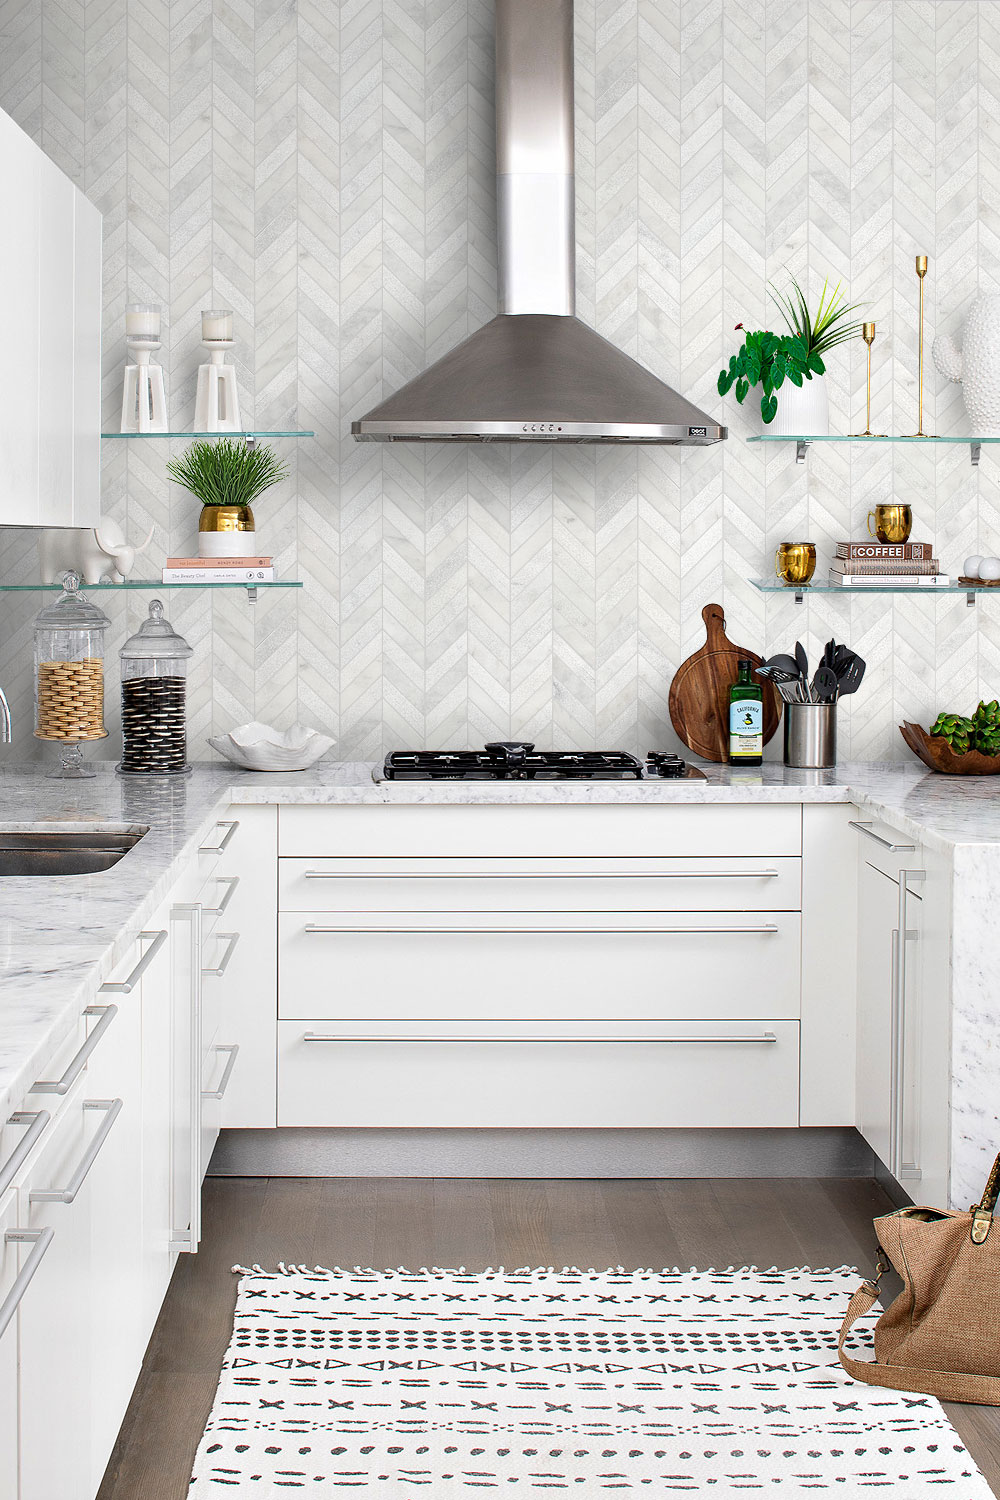 Contemporary Kitchen Marble Countertop Chevron White Backsplash Tile